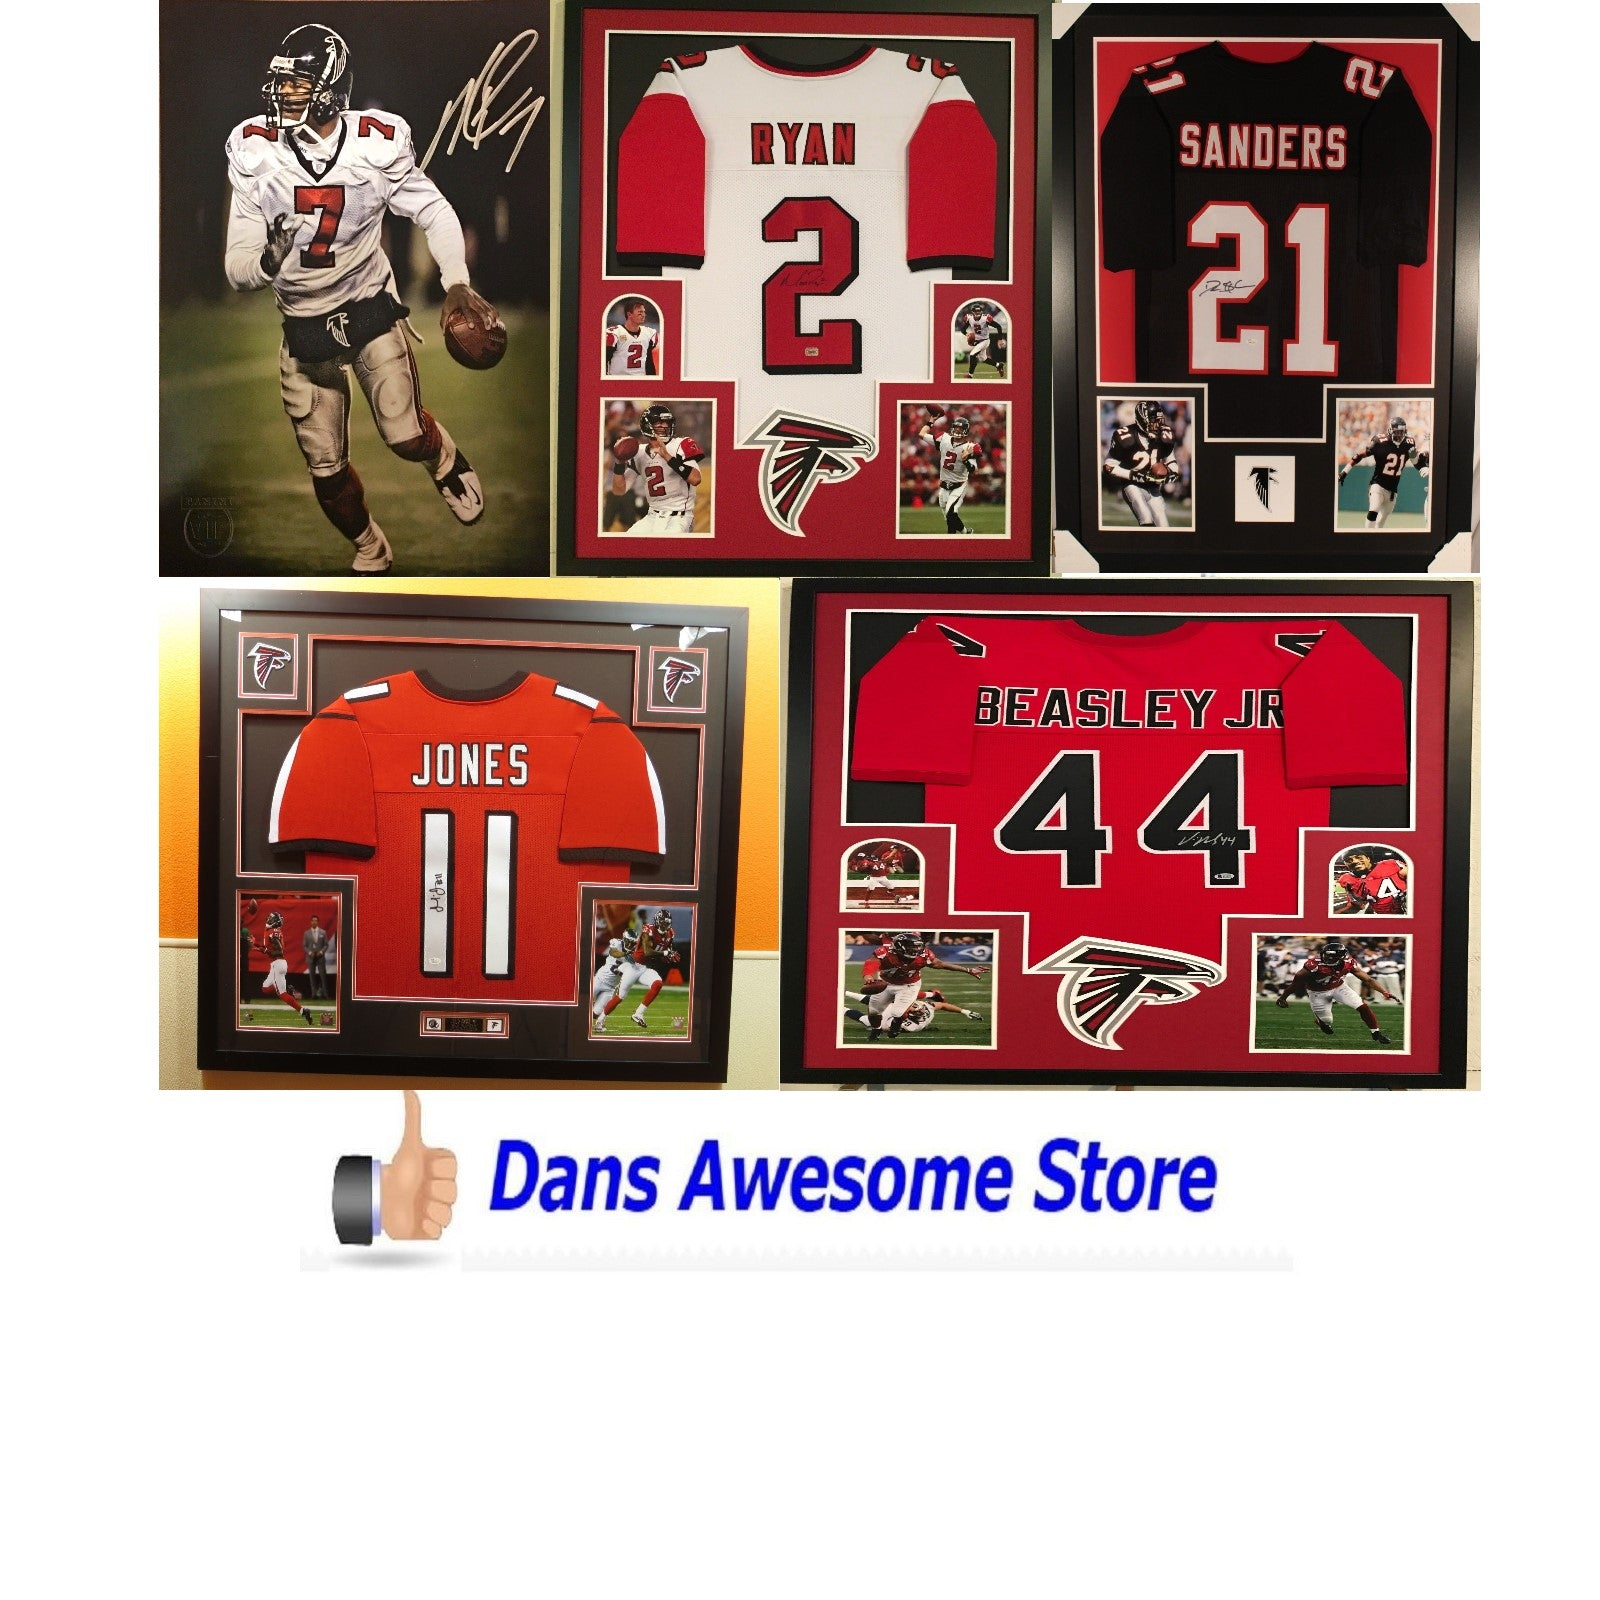 Atlanta Falcons Autograph - Dans Awesome Store